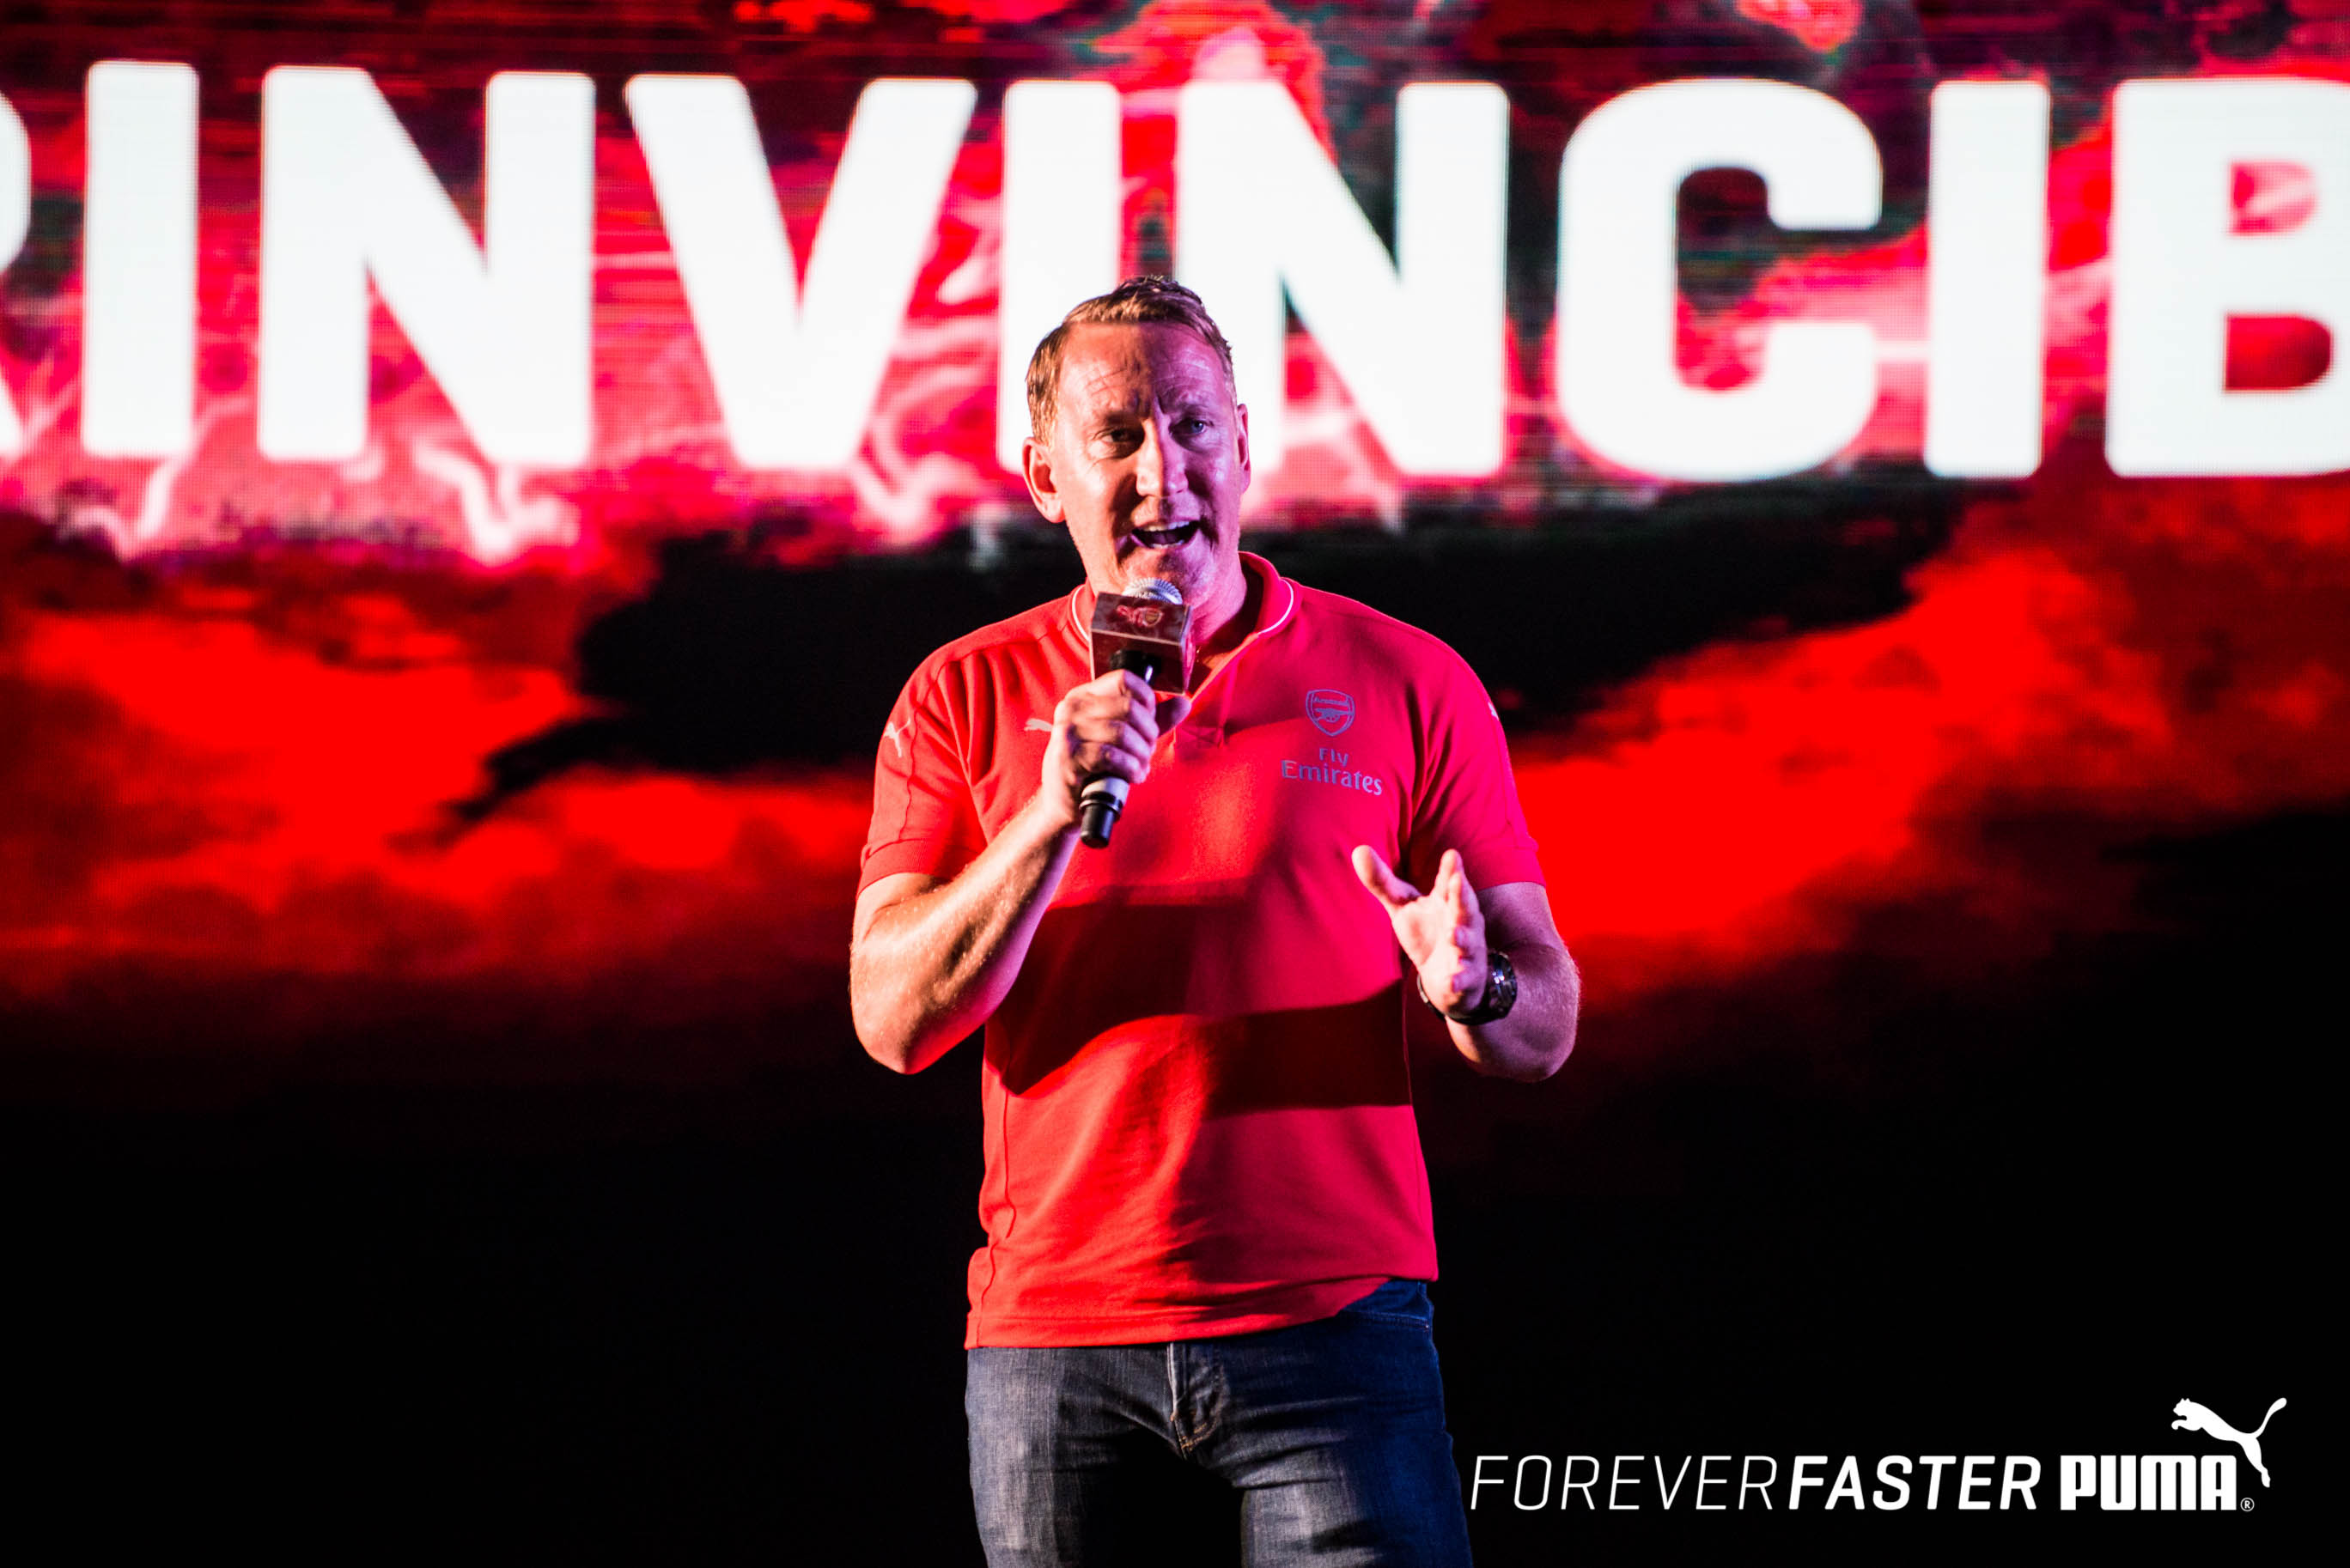 2b96e453e09 Arsenal legend Ray Parlour at the launch of the PUMA- Arsenal kits in India  for Arsenal legend Sol Campbell ...